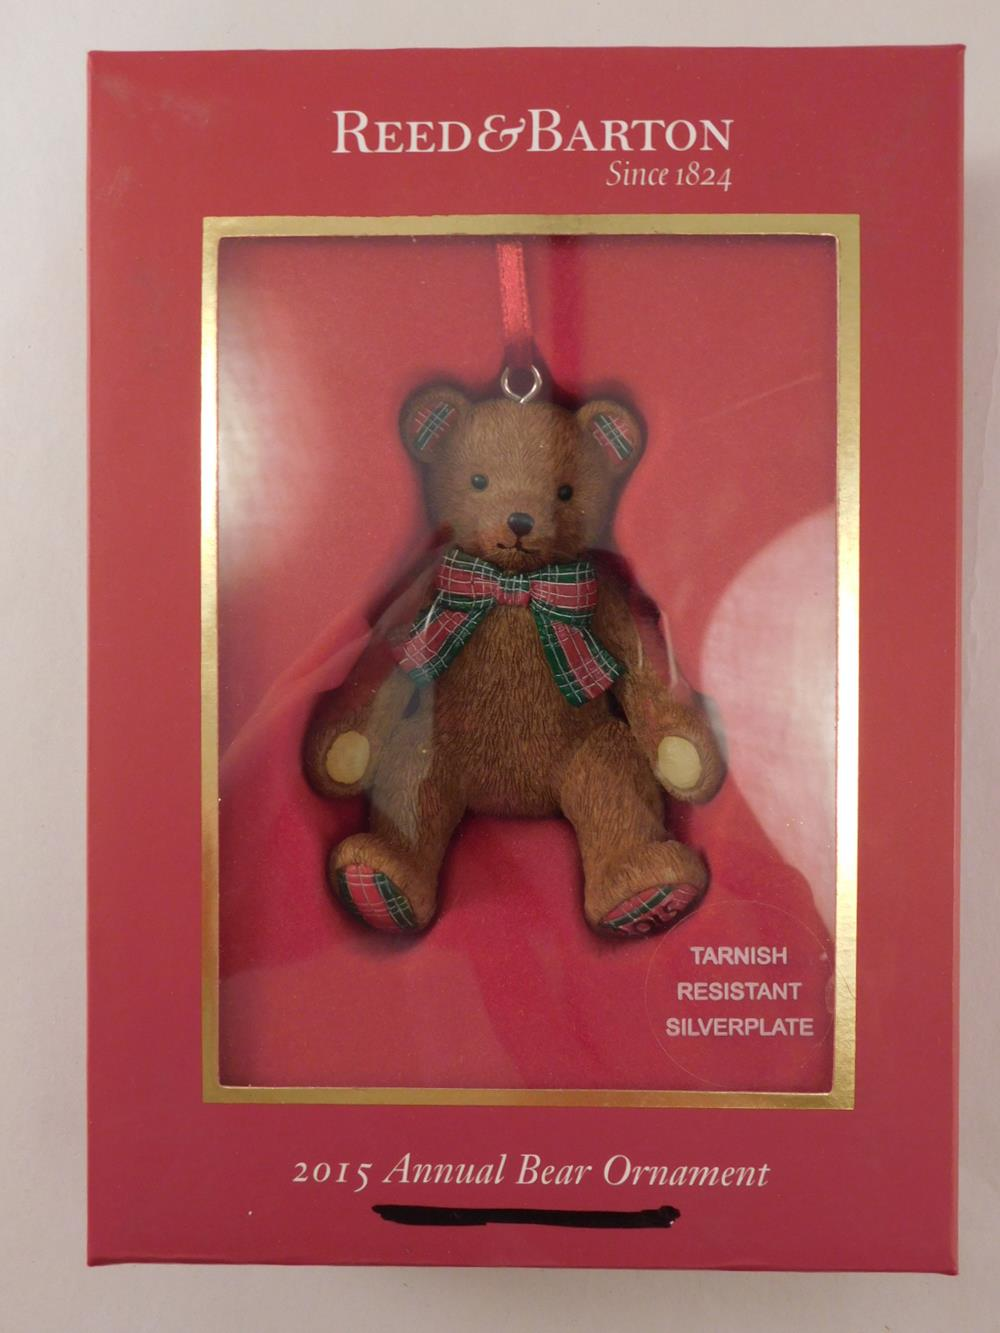 REED AND BARTON 2015 ANNUAL BEAR ORNAMENT